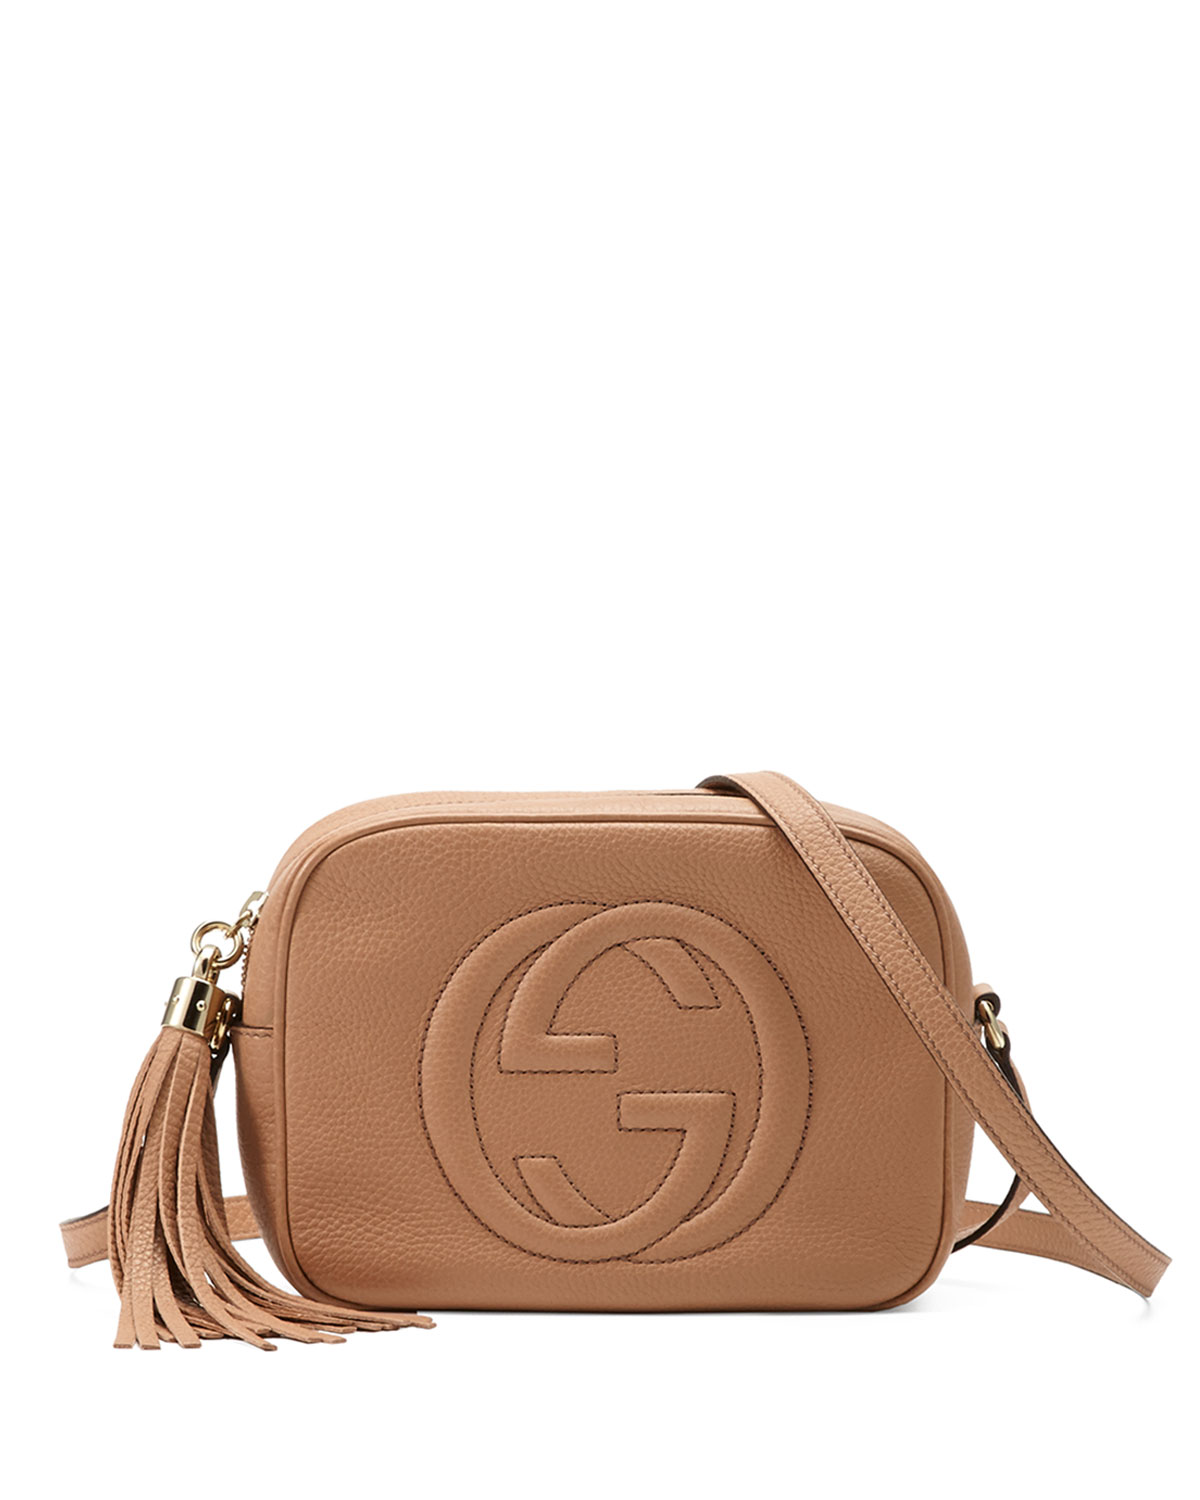 b10cc97dd2e1 Gucci Soho Small Shoulder Bag, Beige | Neiman Marcus